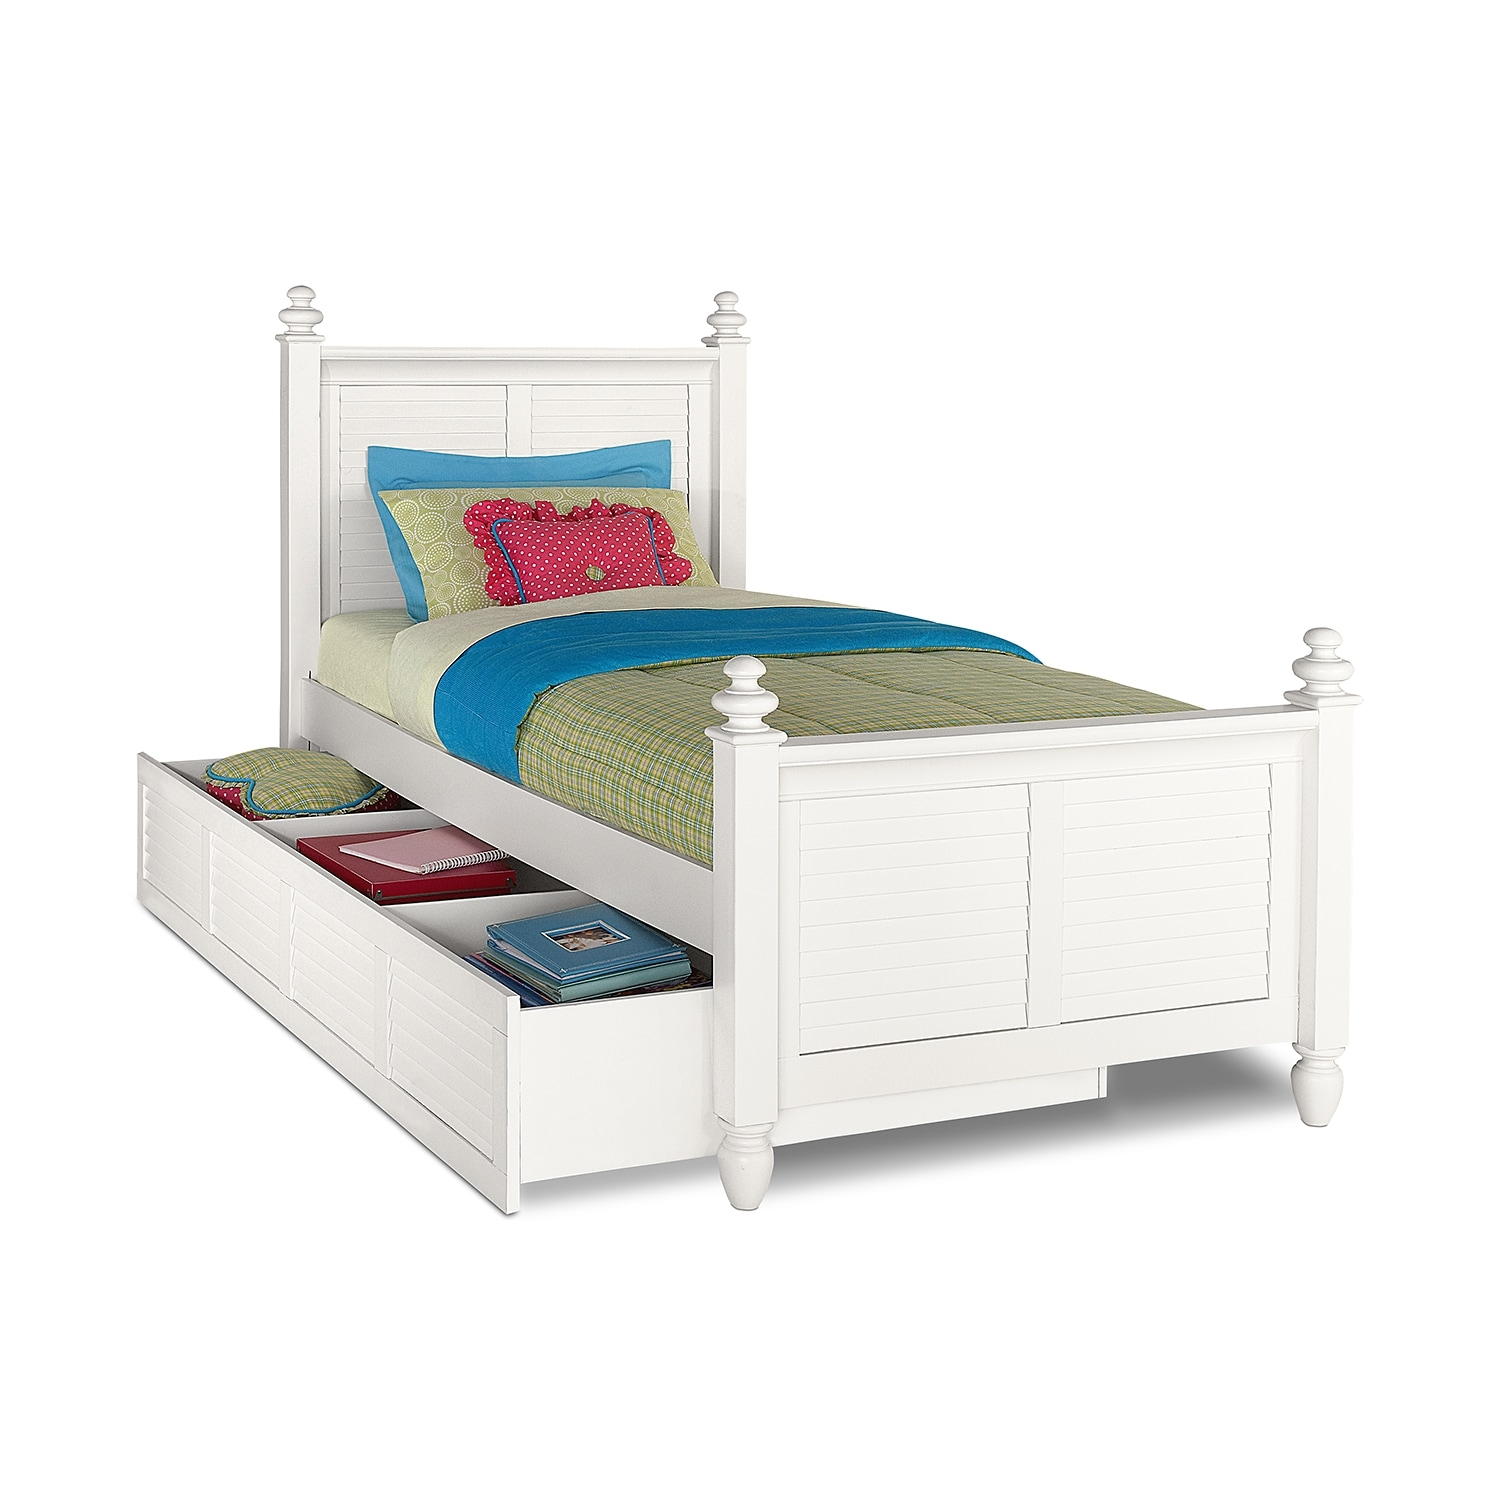 Kids Furniture - Seaside White Twin Bed with Trundle